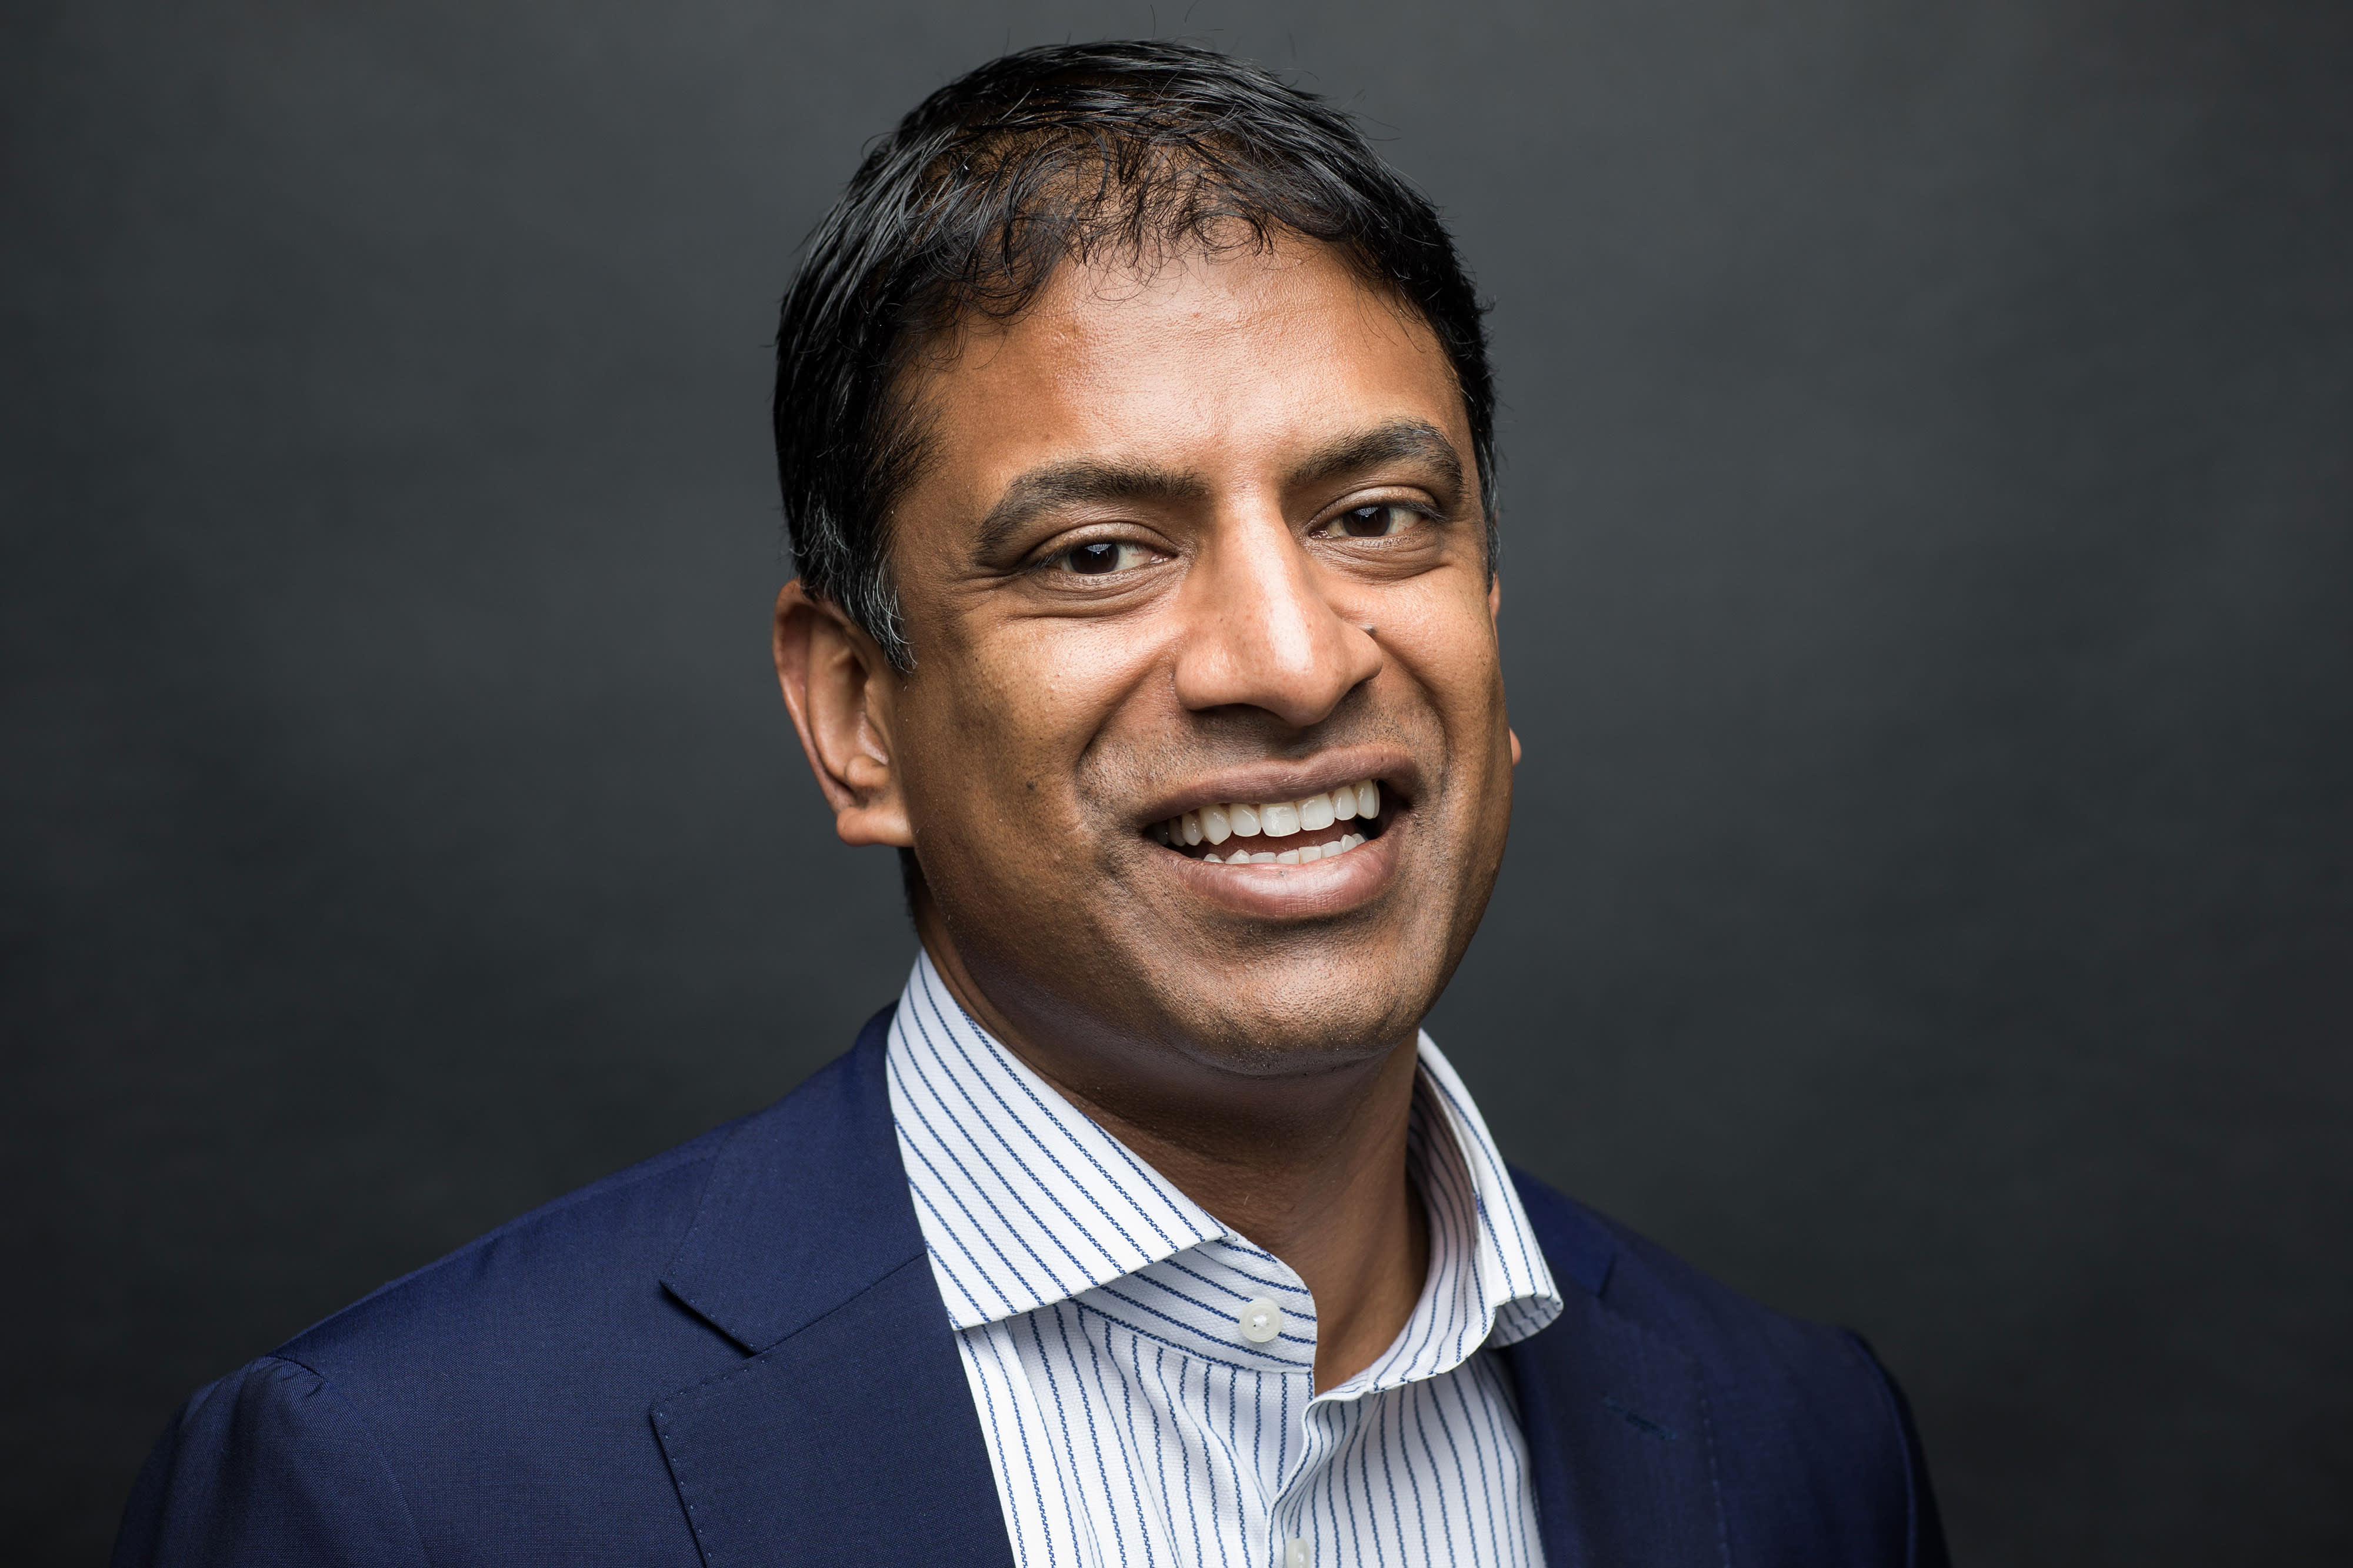 Commentary: Novartis CEO: Gene therapy offers hope of cures in one treatment, but US needs new pricing and payment model